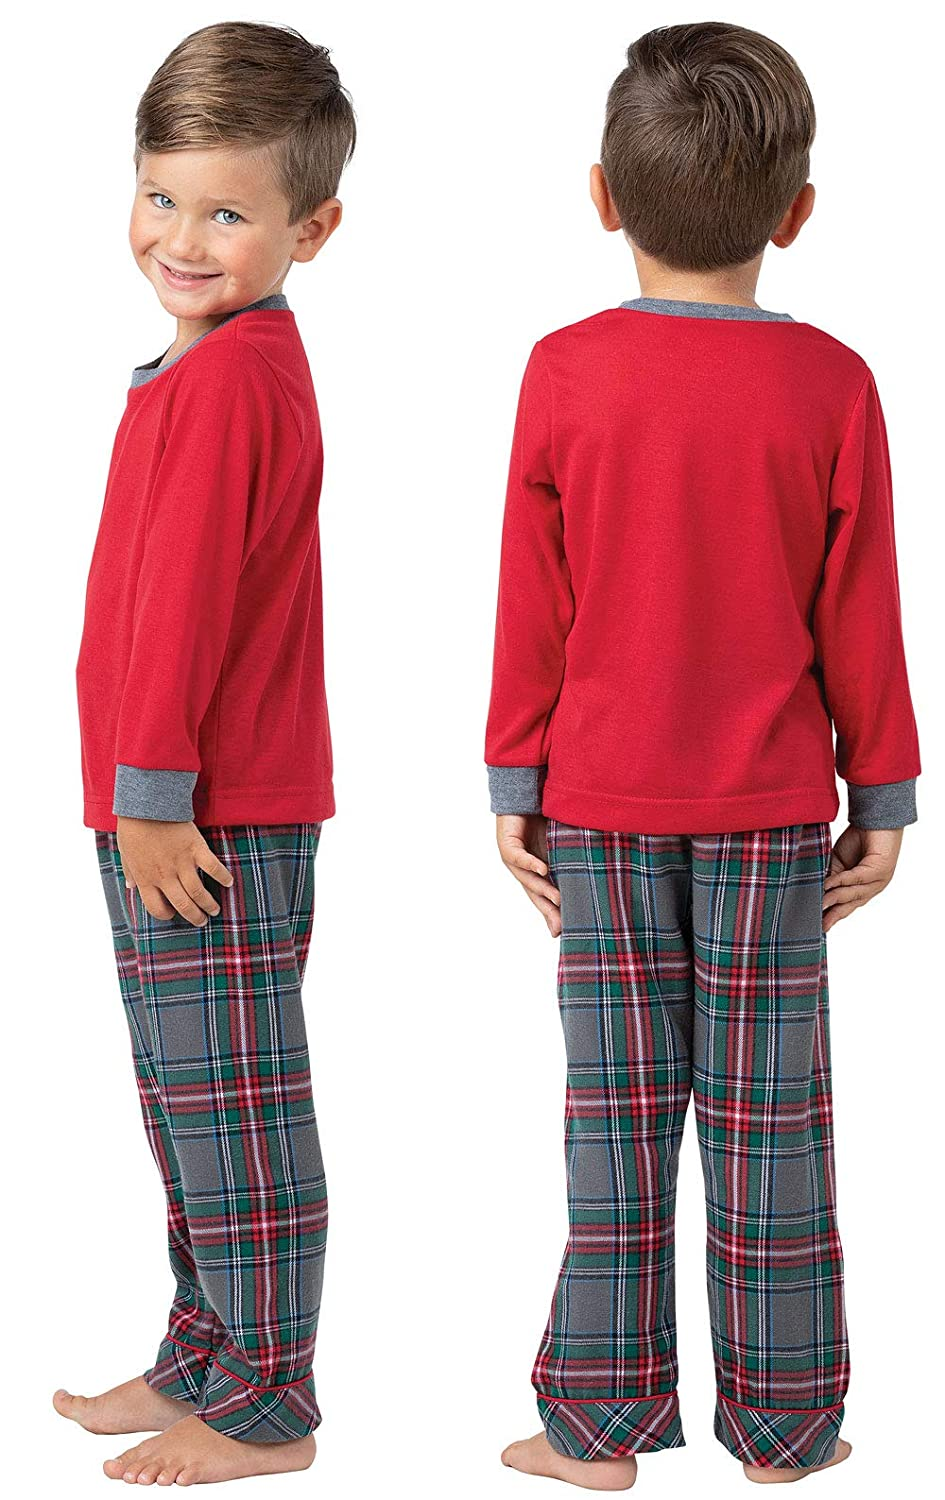 PajamaGram Toddlers Flannel Classic Plaid Pajamas with Long-Sleeved Top